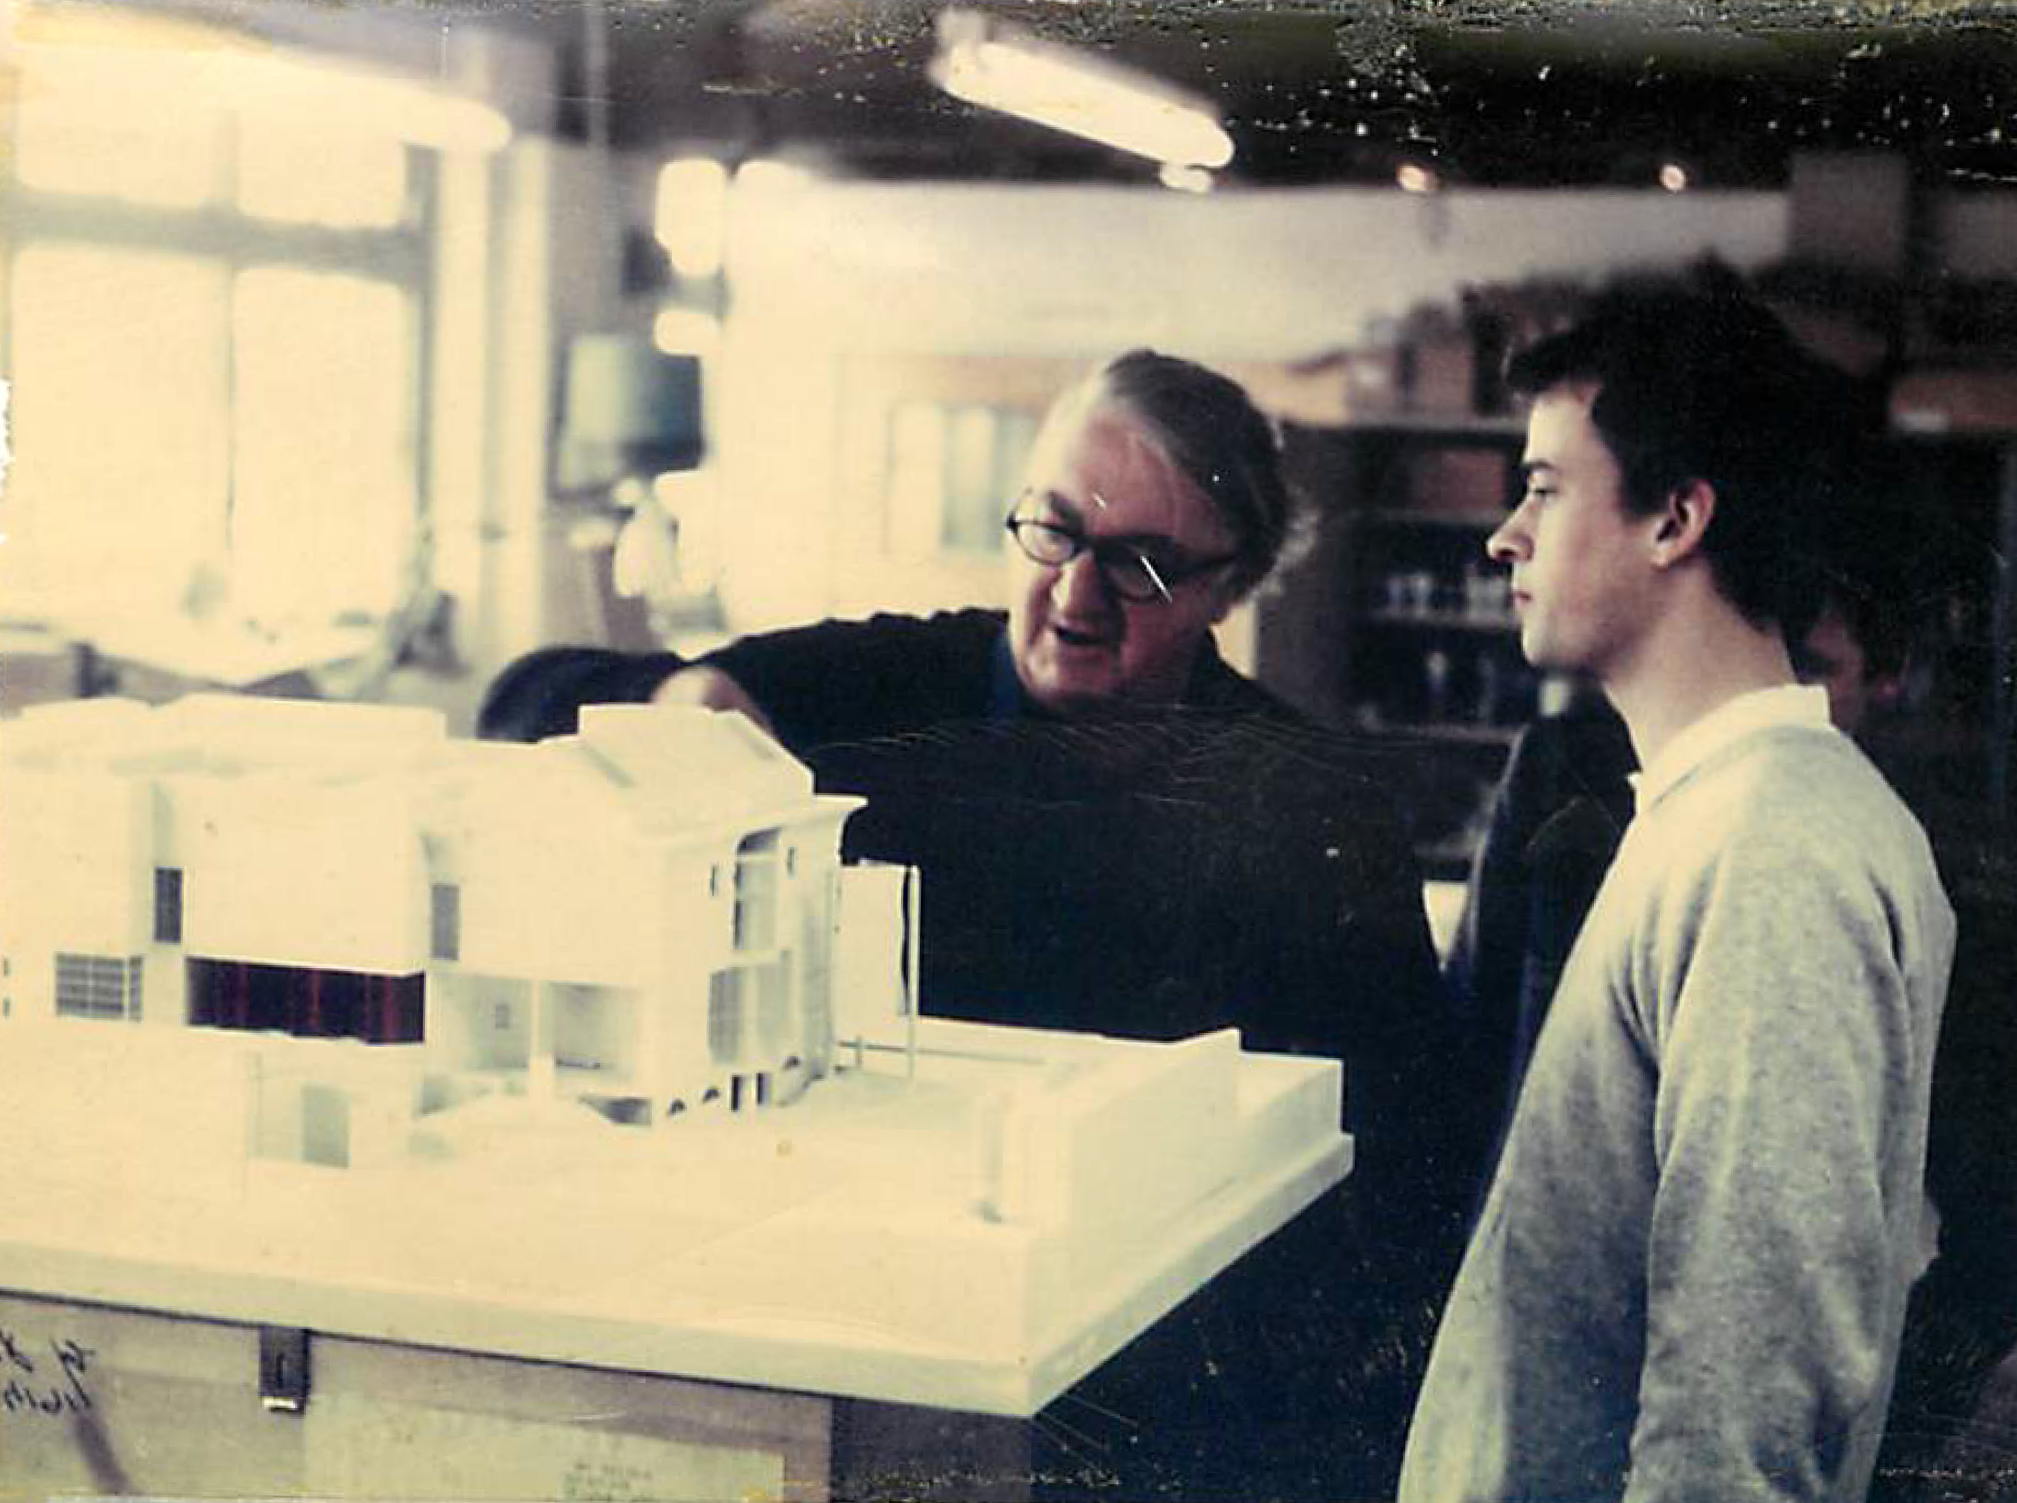 Modelmaking tradition: James Stirling inspects a model with a young(er!) David Gomm, now a Director at Kandor Modelmakers.